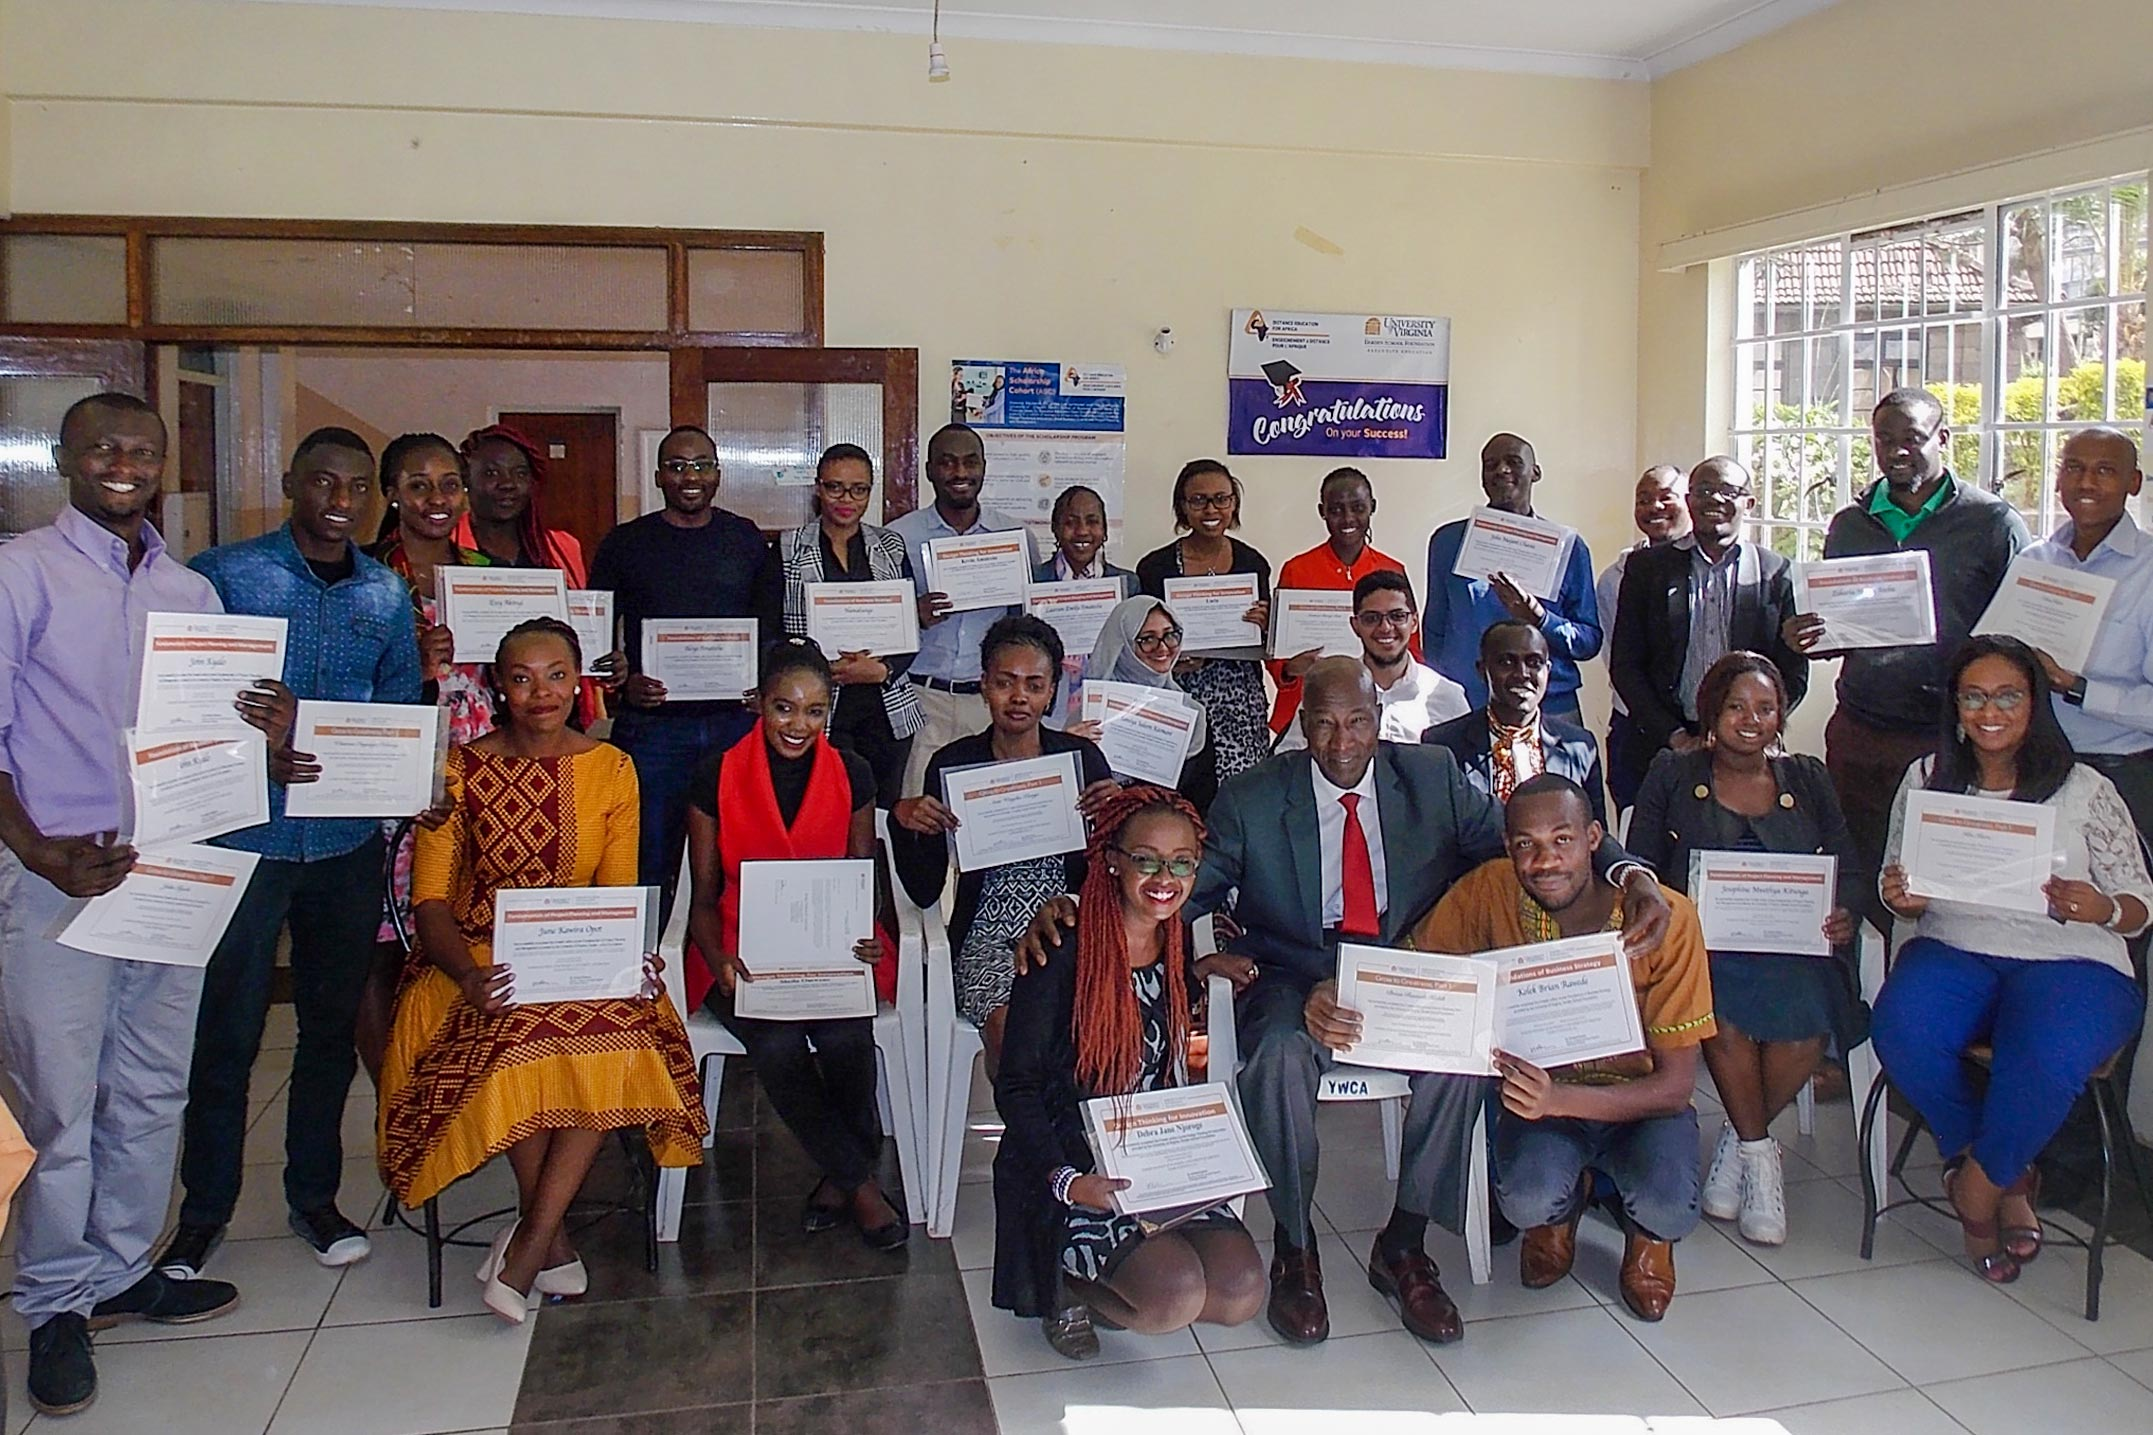 Students at a graduation ceremony in Kenya after completing the Business Strategy Specialization, a certificate program offered online by UVA's Darden School of Business.